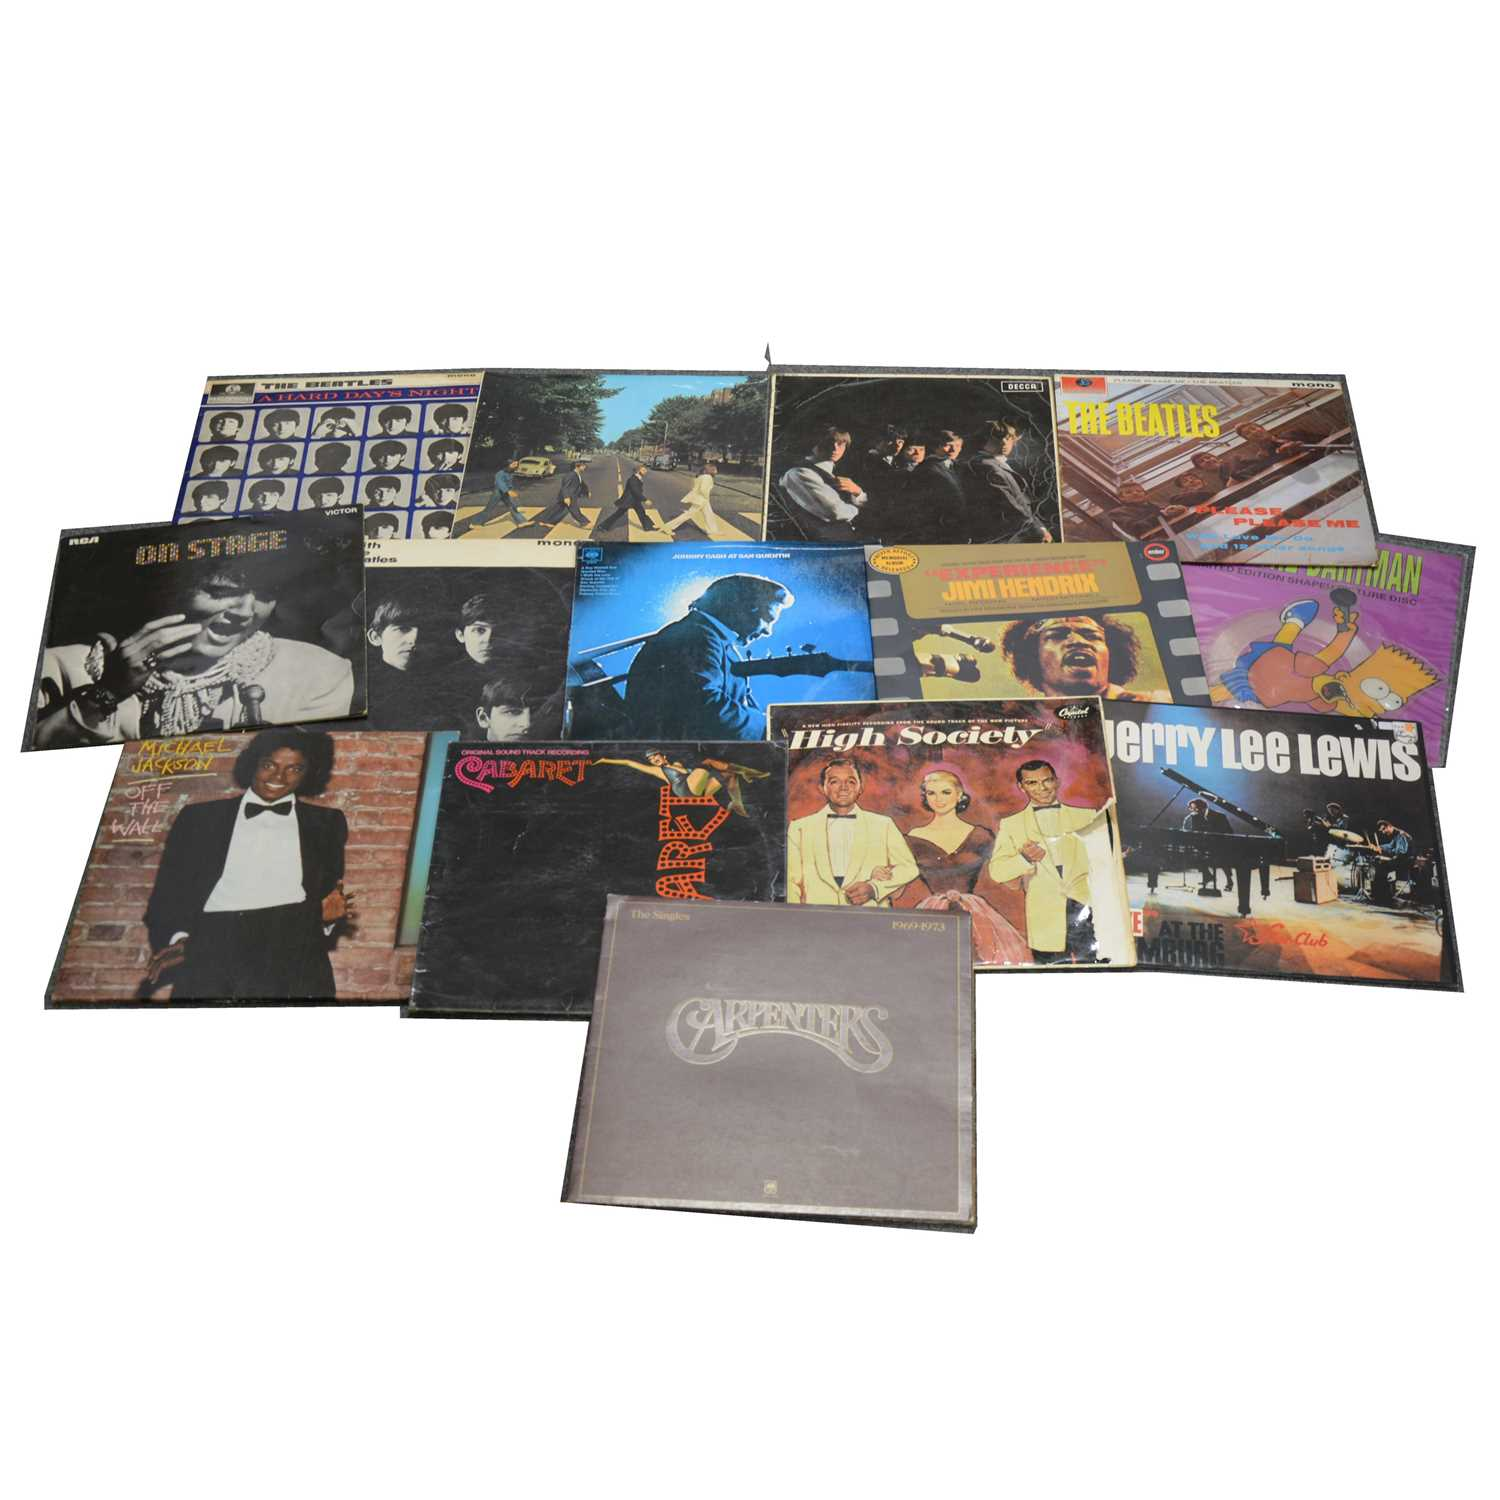 """Lot 24-Small collection vinyl records, including The Beatles, The Rolling Stones and a small quantity of 7"""" singles."""